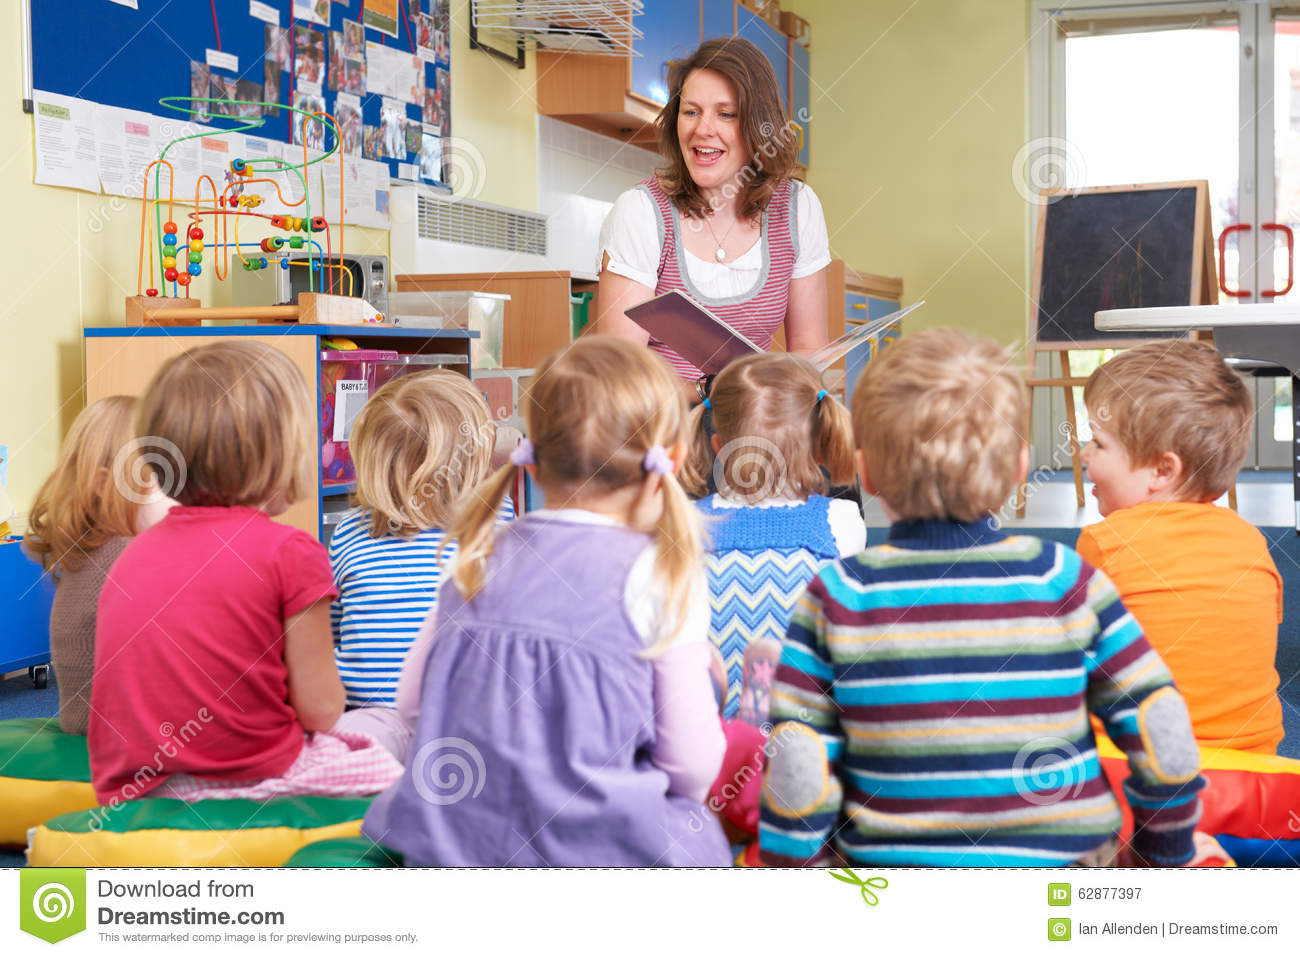 teaching listening to children Children with good listening skills perform better in school, are more successful in social relationships, and have better frustration tolerance (when you can listen to other options, you are less prone to acting out when faced with frustration) listening skills should be taught early.